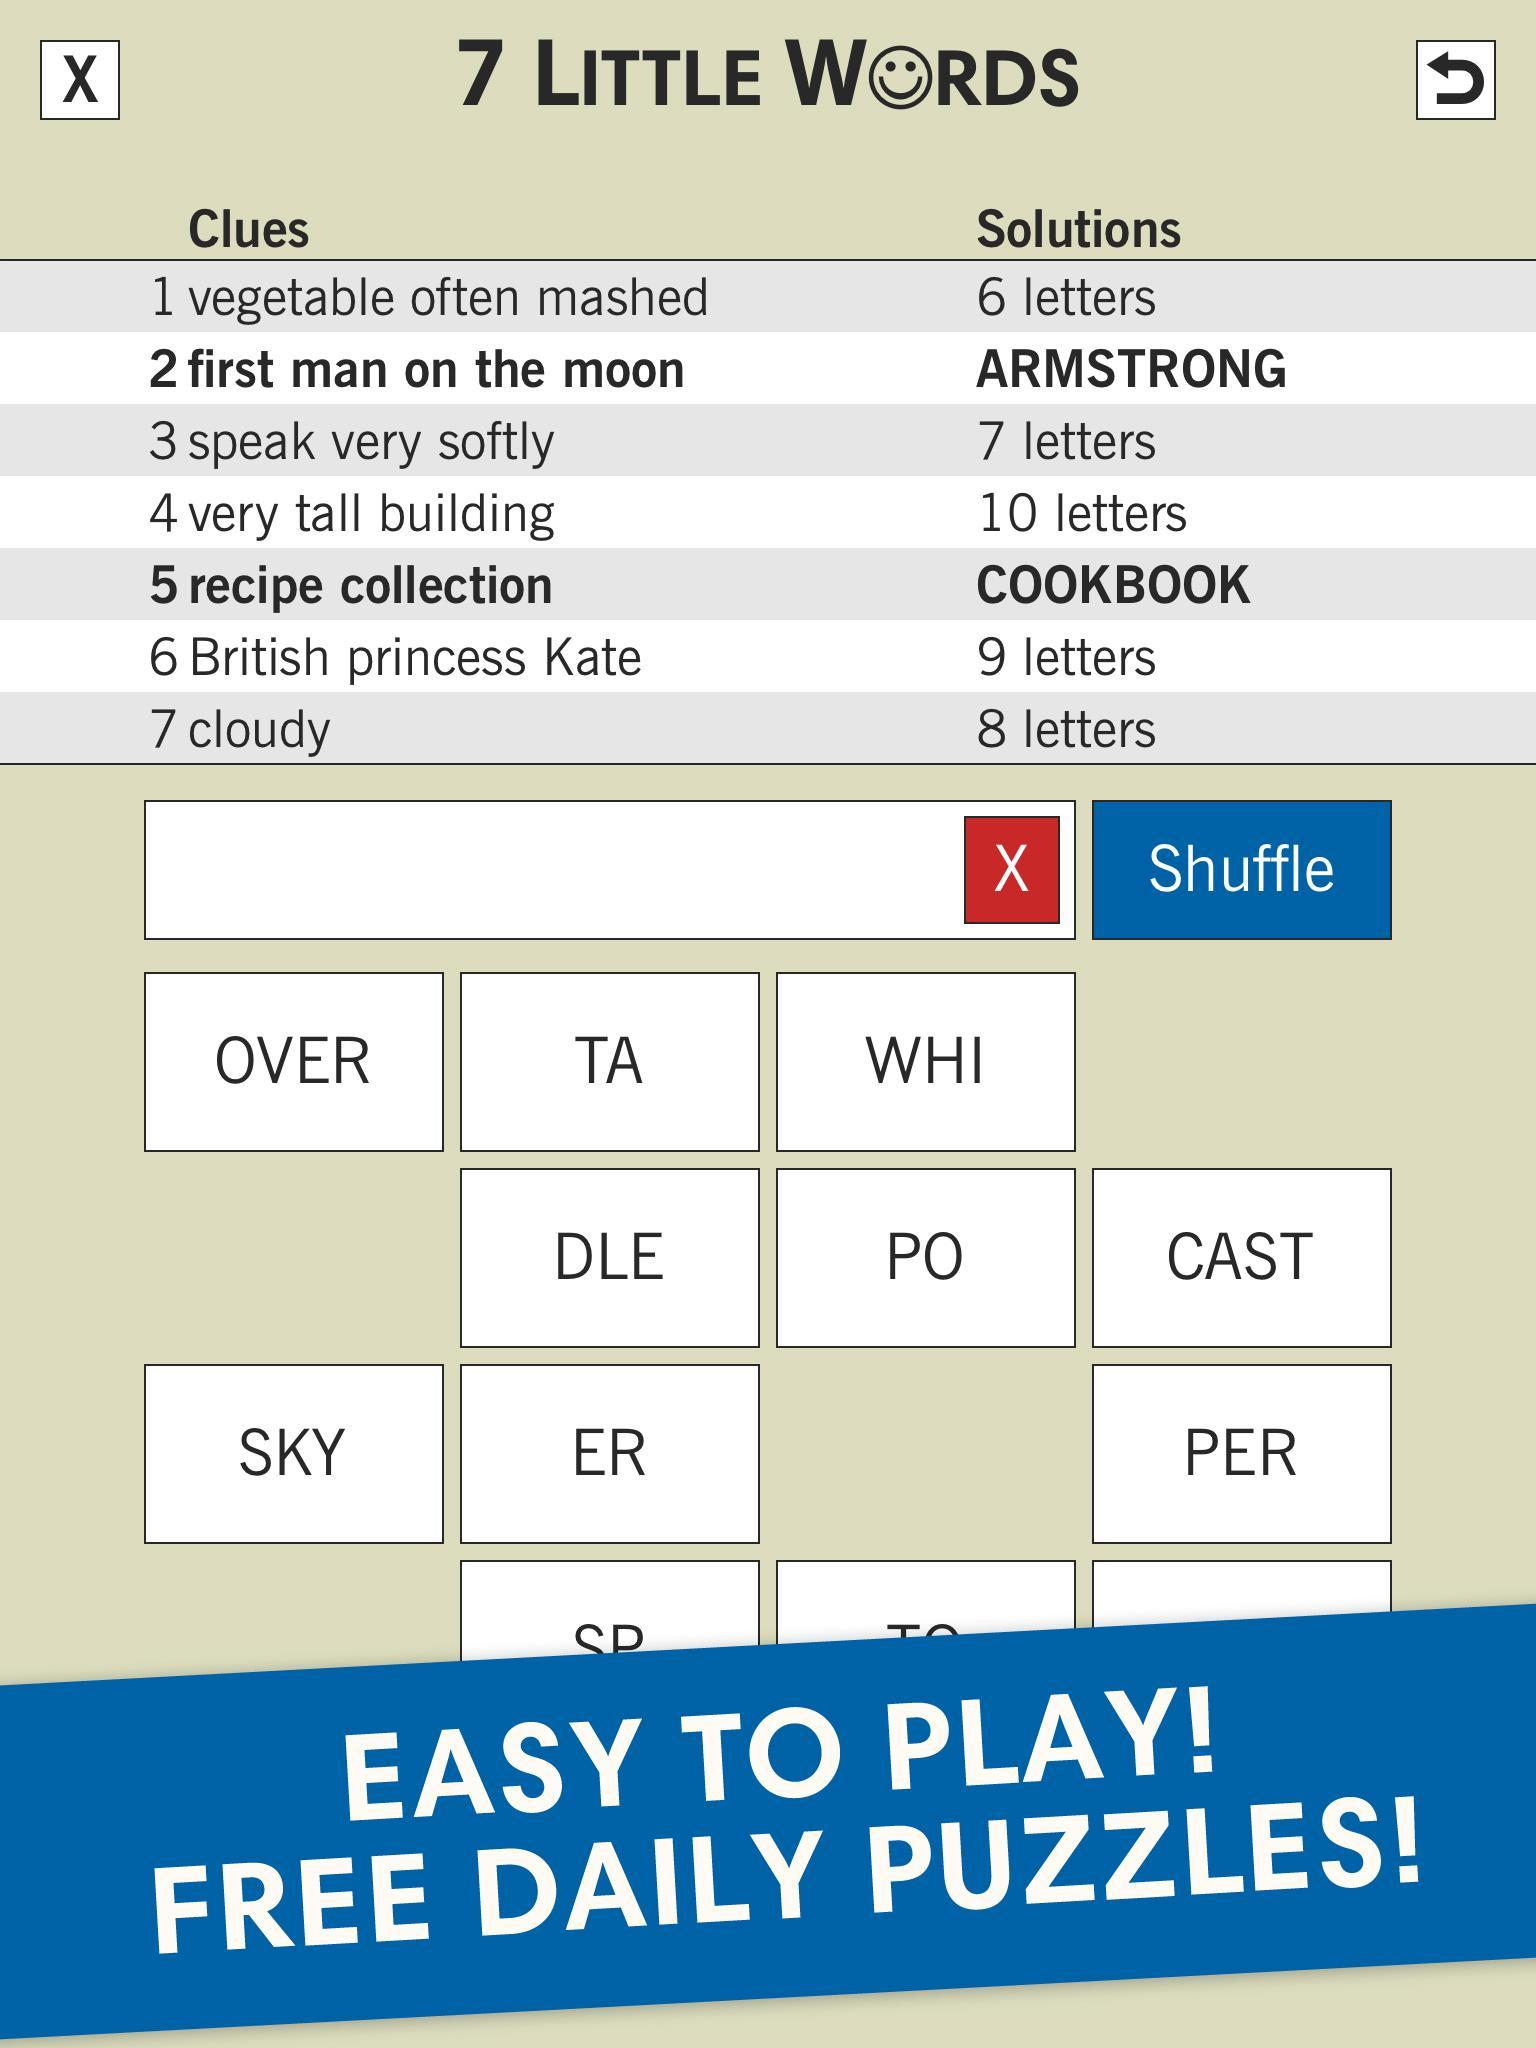 7 Little Words: A fun twist on crossword puzzles for ...